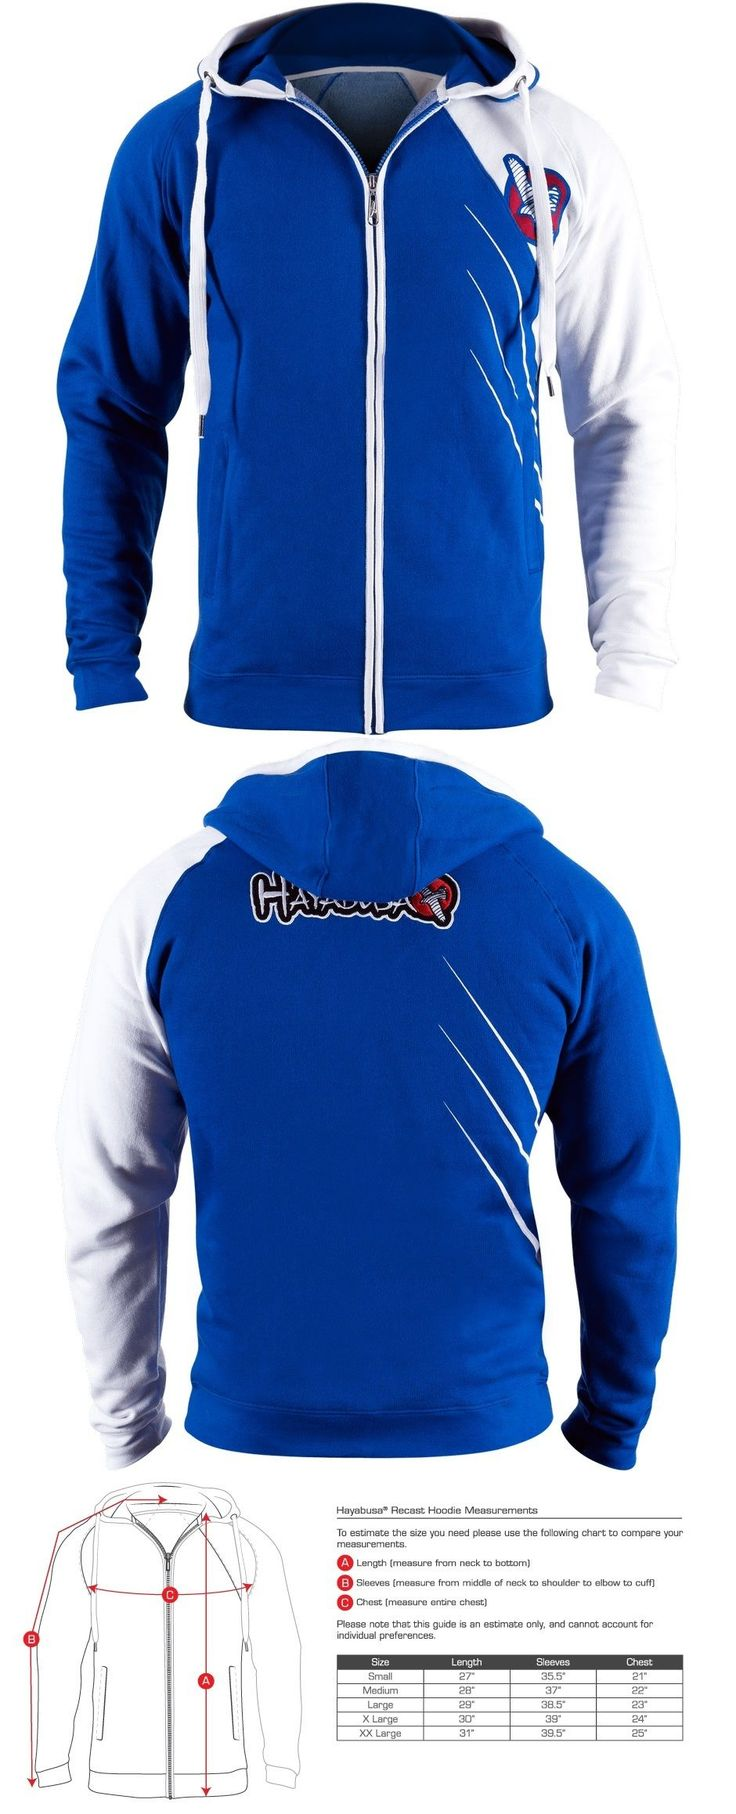 Hoodies and Sweatshirts 179770: New Hayabusa Recast Mens Hoodie Sweat Shirt Mma - Blue / White - Large L BUY IT NOW ONLY: $79.99